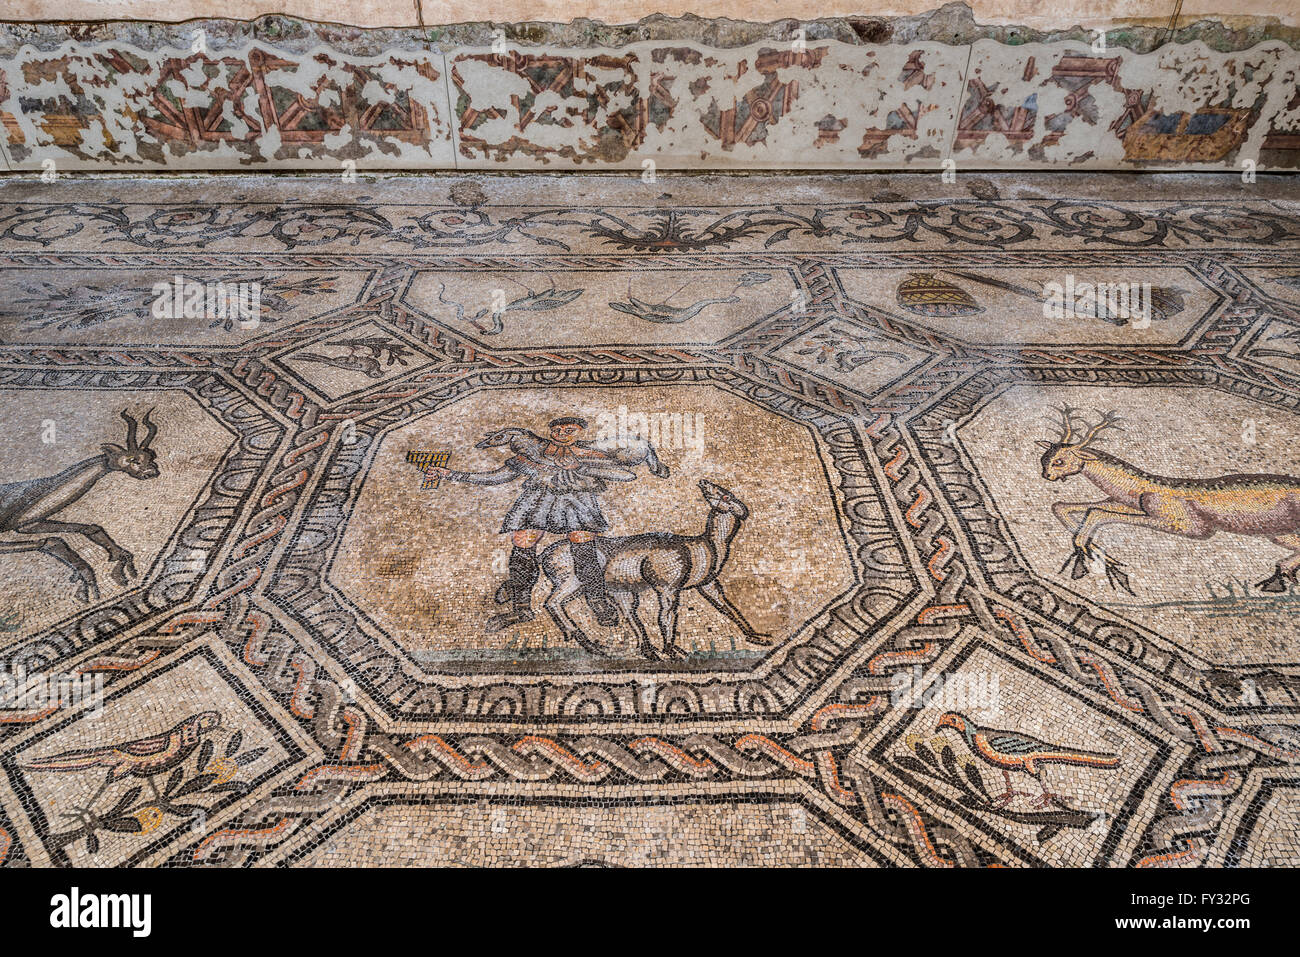 Early Christian mosaic floor with animal symbolism, 4th century, exposed in Romanesque Basilica, interior, Aquileia - Stock Image